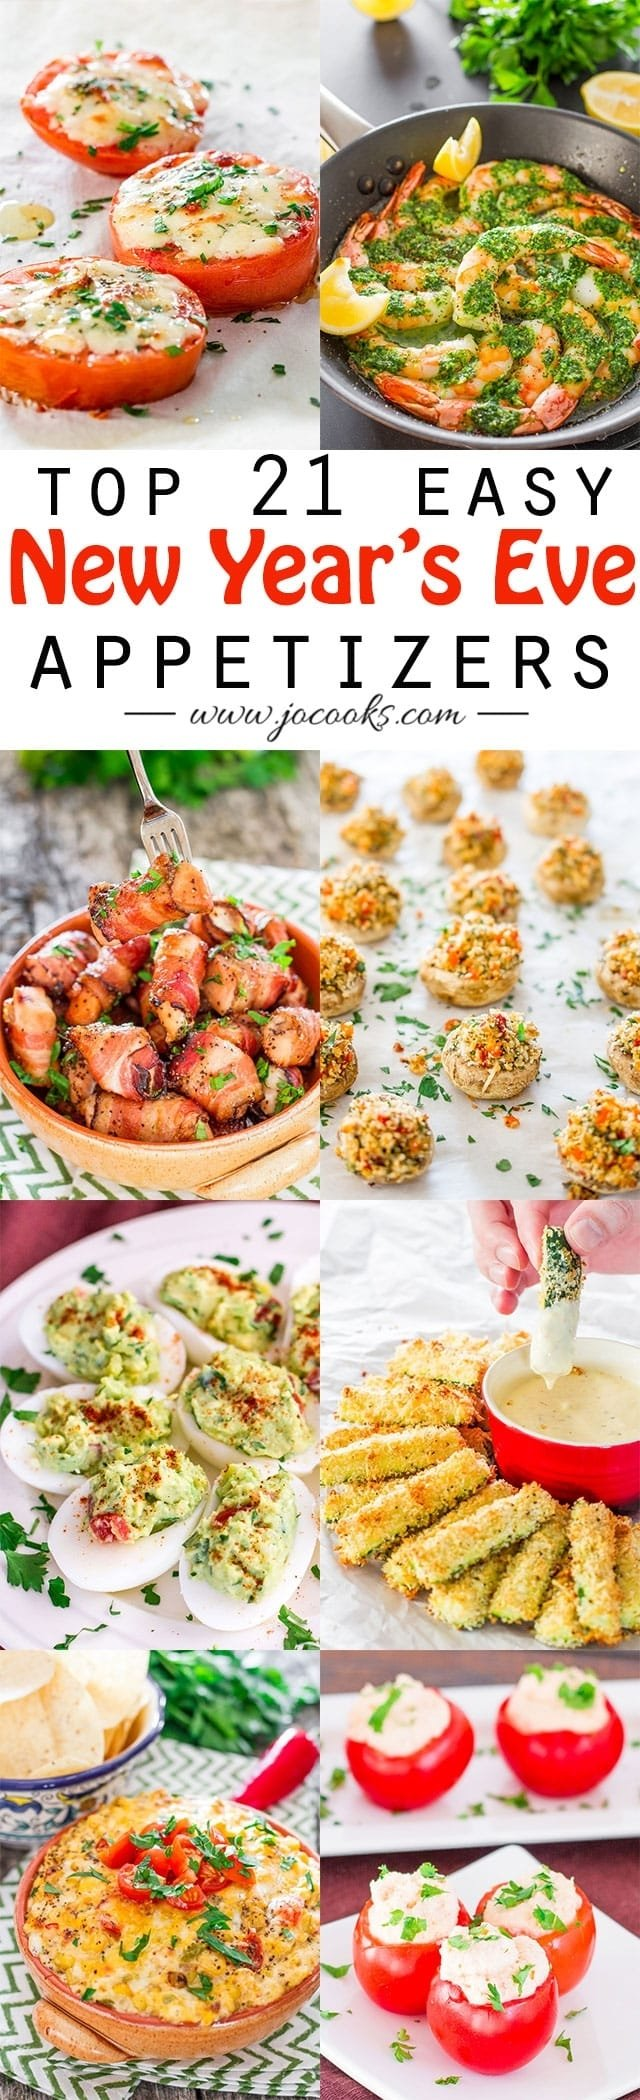 10 Beautiful New Years Eve Menu Ideas 21 top easy new years eve appetizers jo cooks 2020